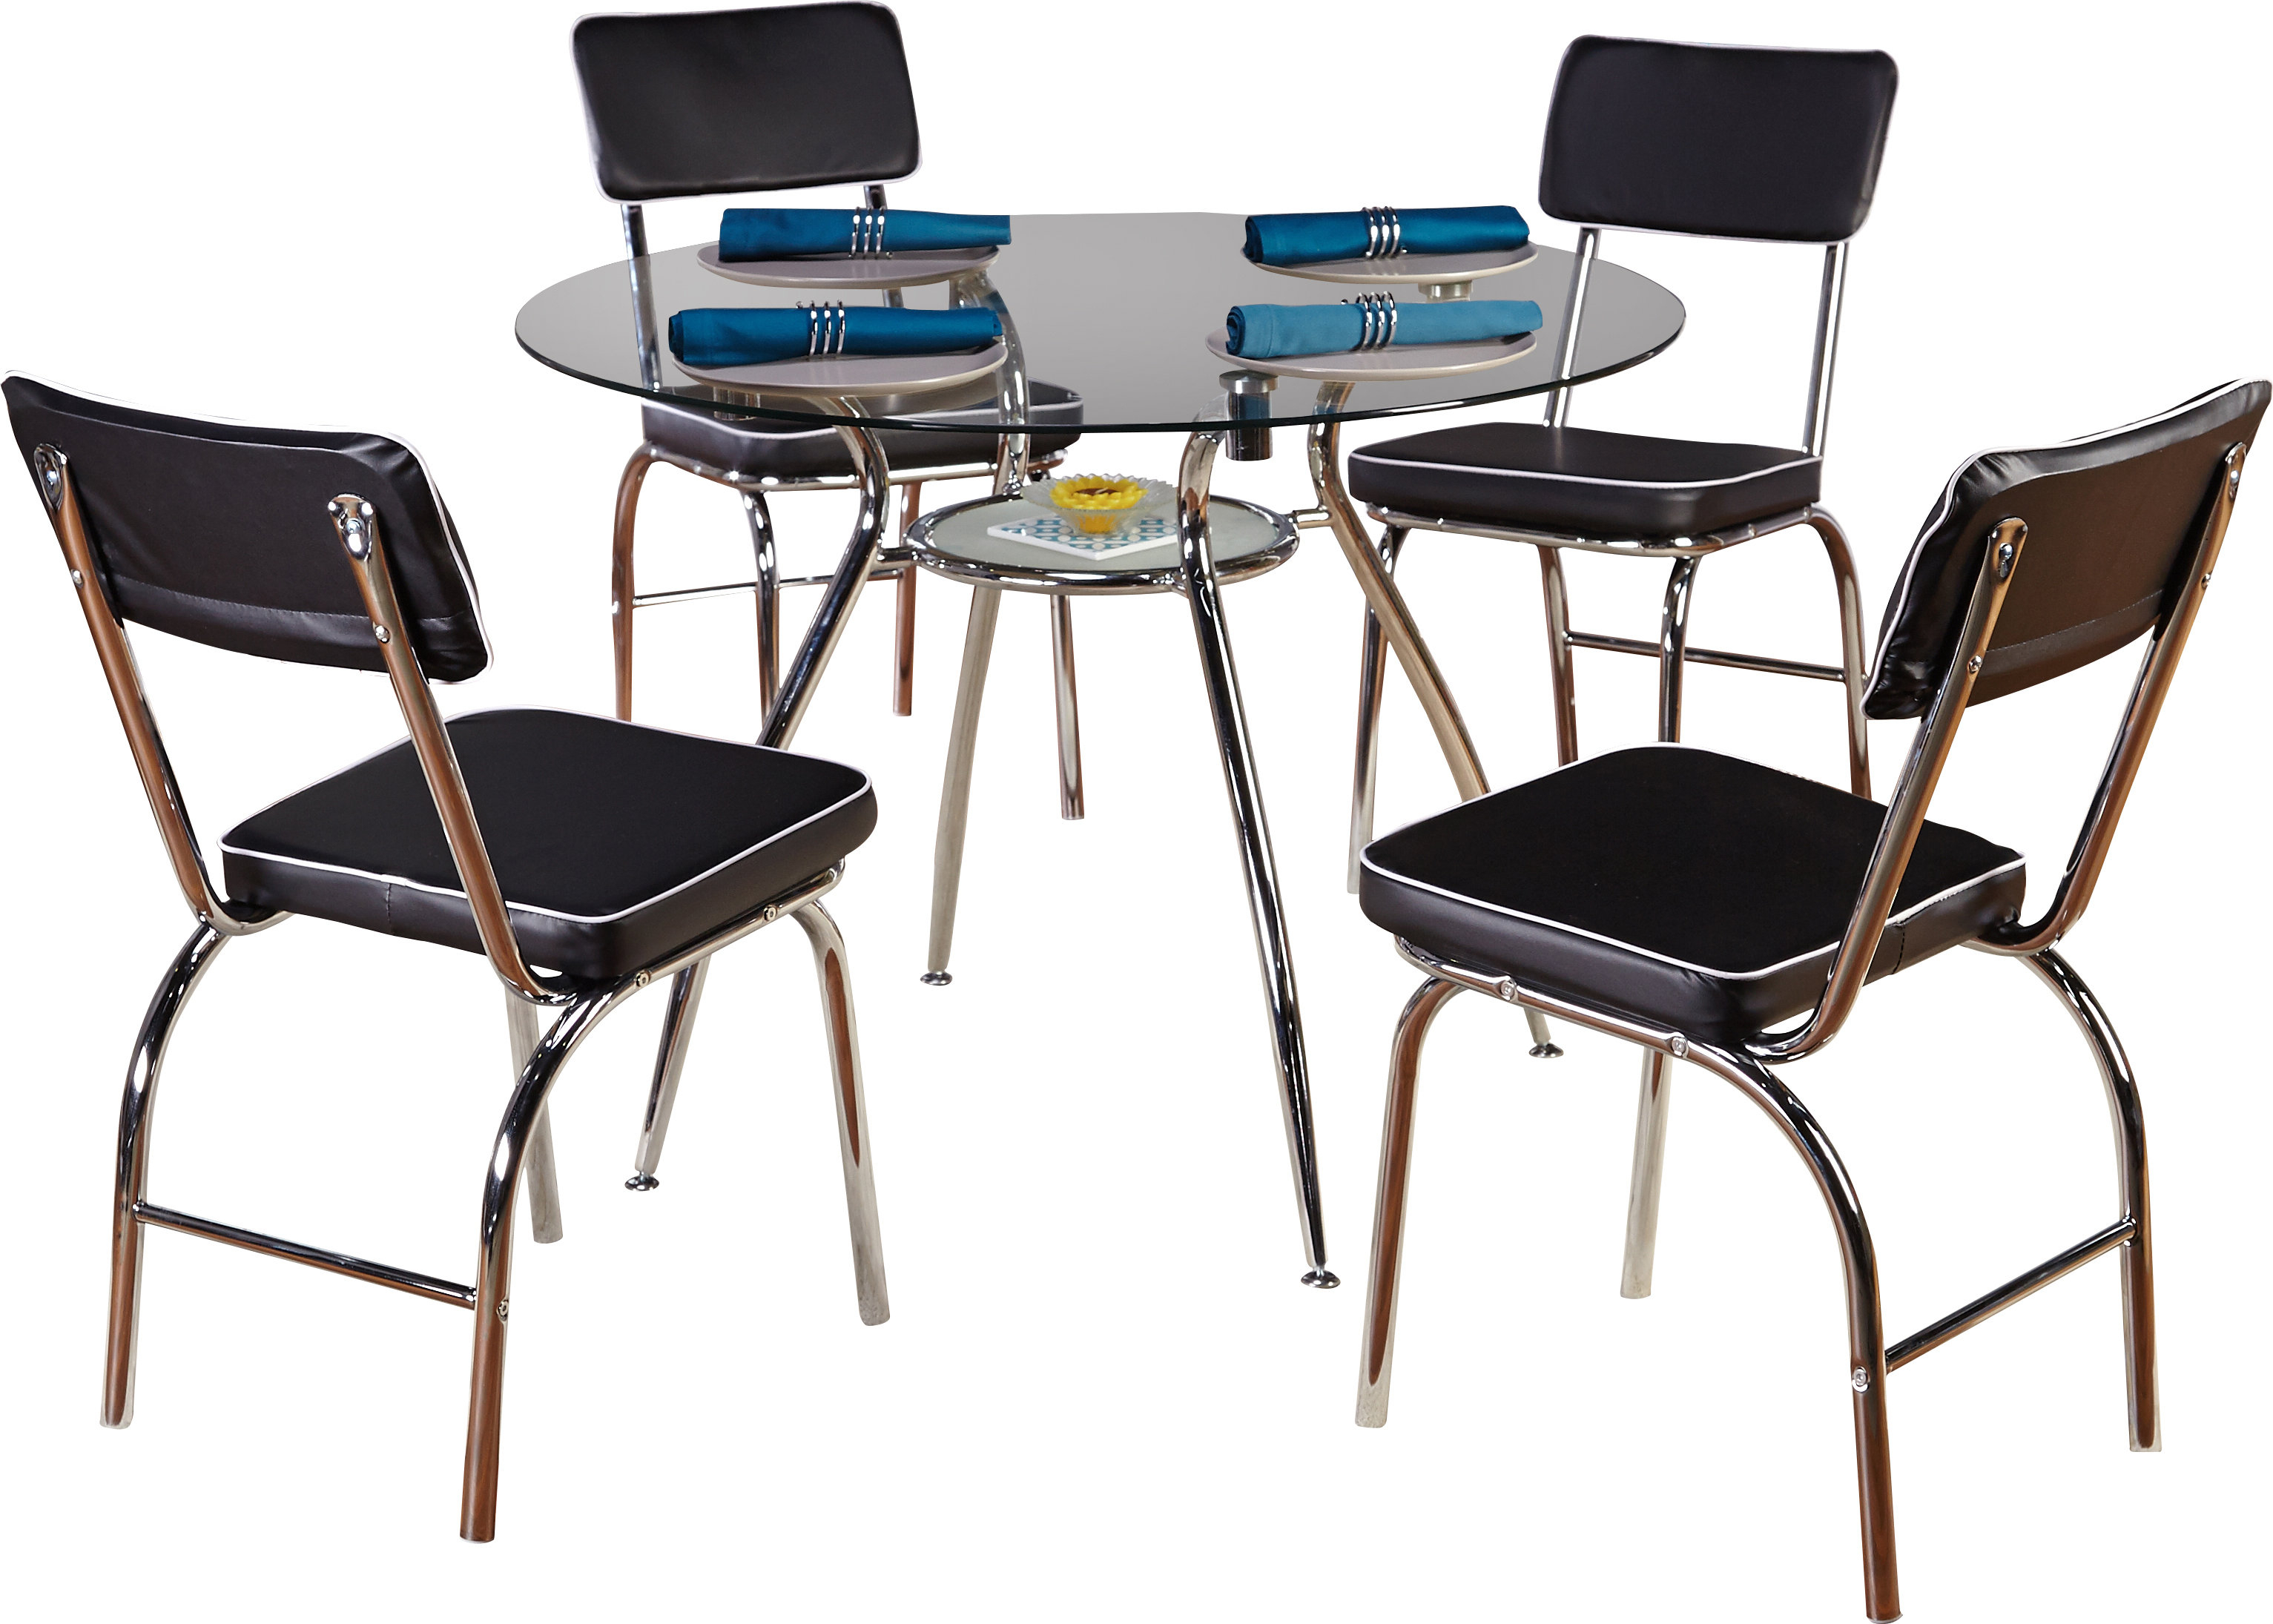 Tms Mable 5 Piece Dining Set Inside Best And Newest Bate Red Retro 3 Piece Dining Sets (View 20 of 20)